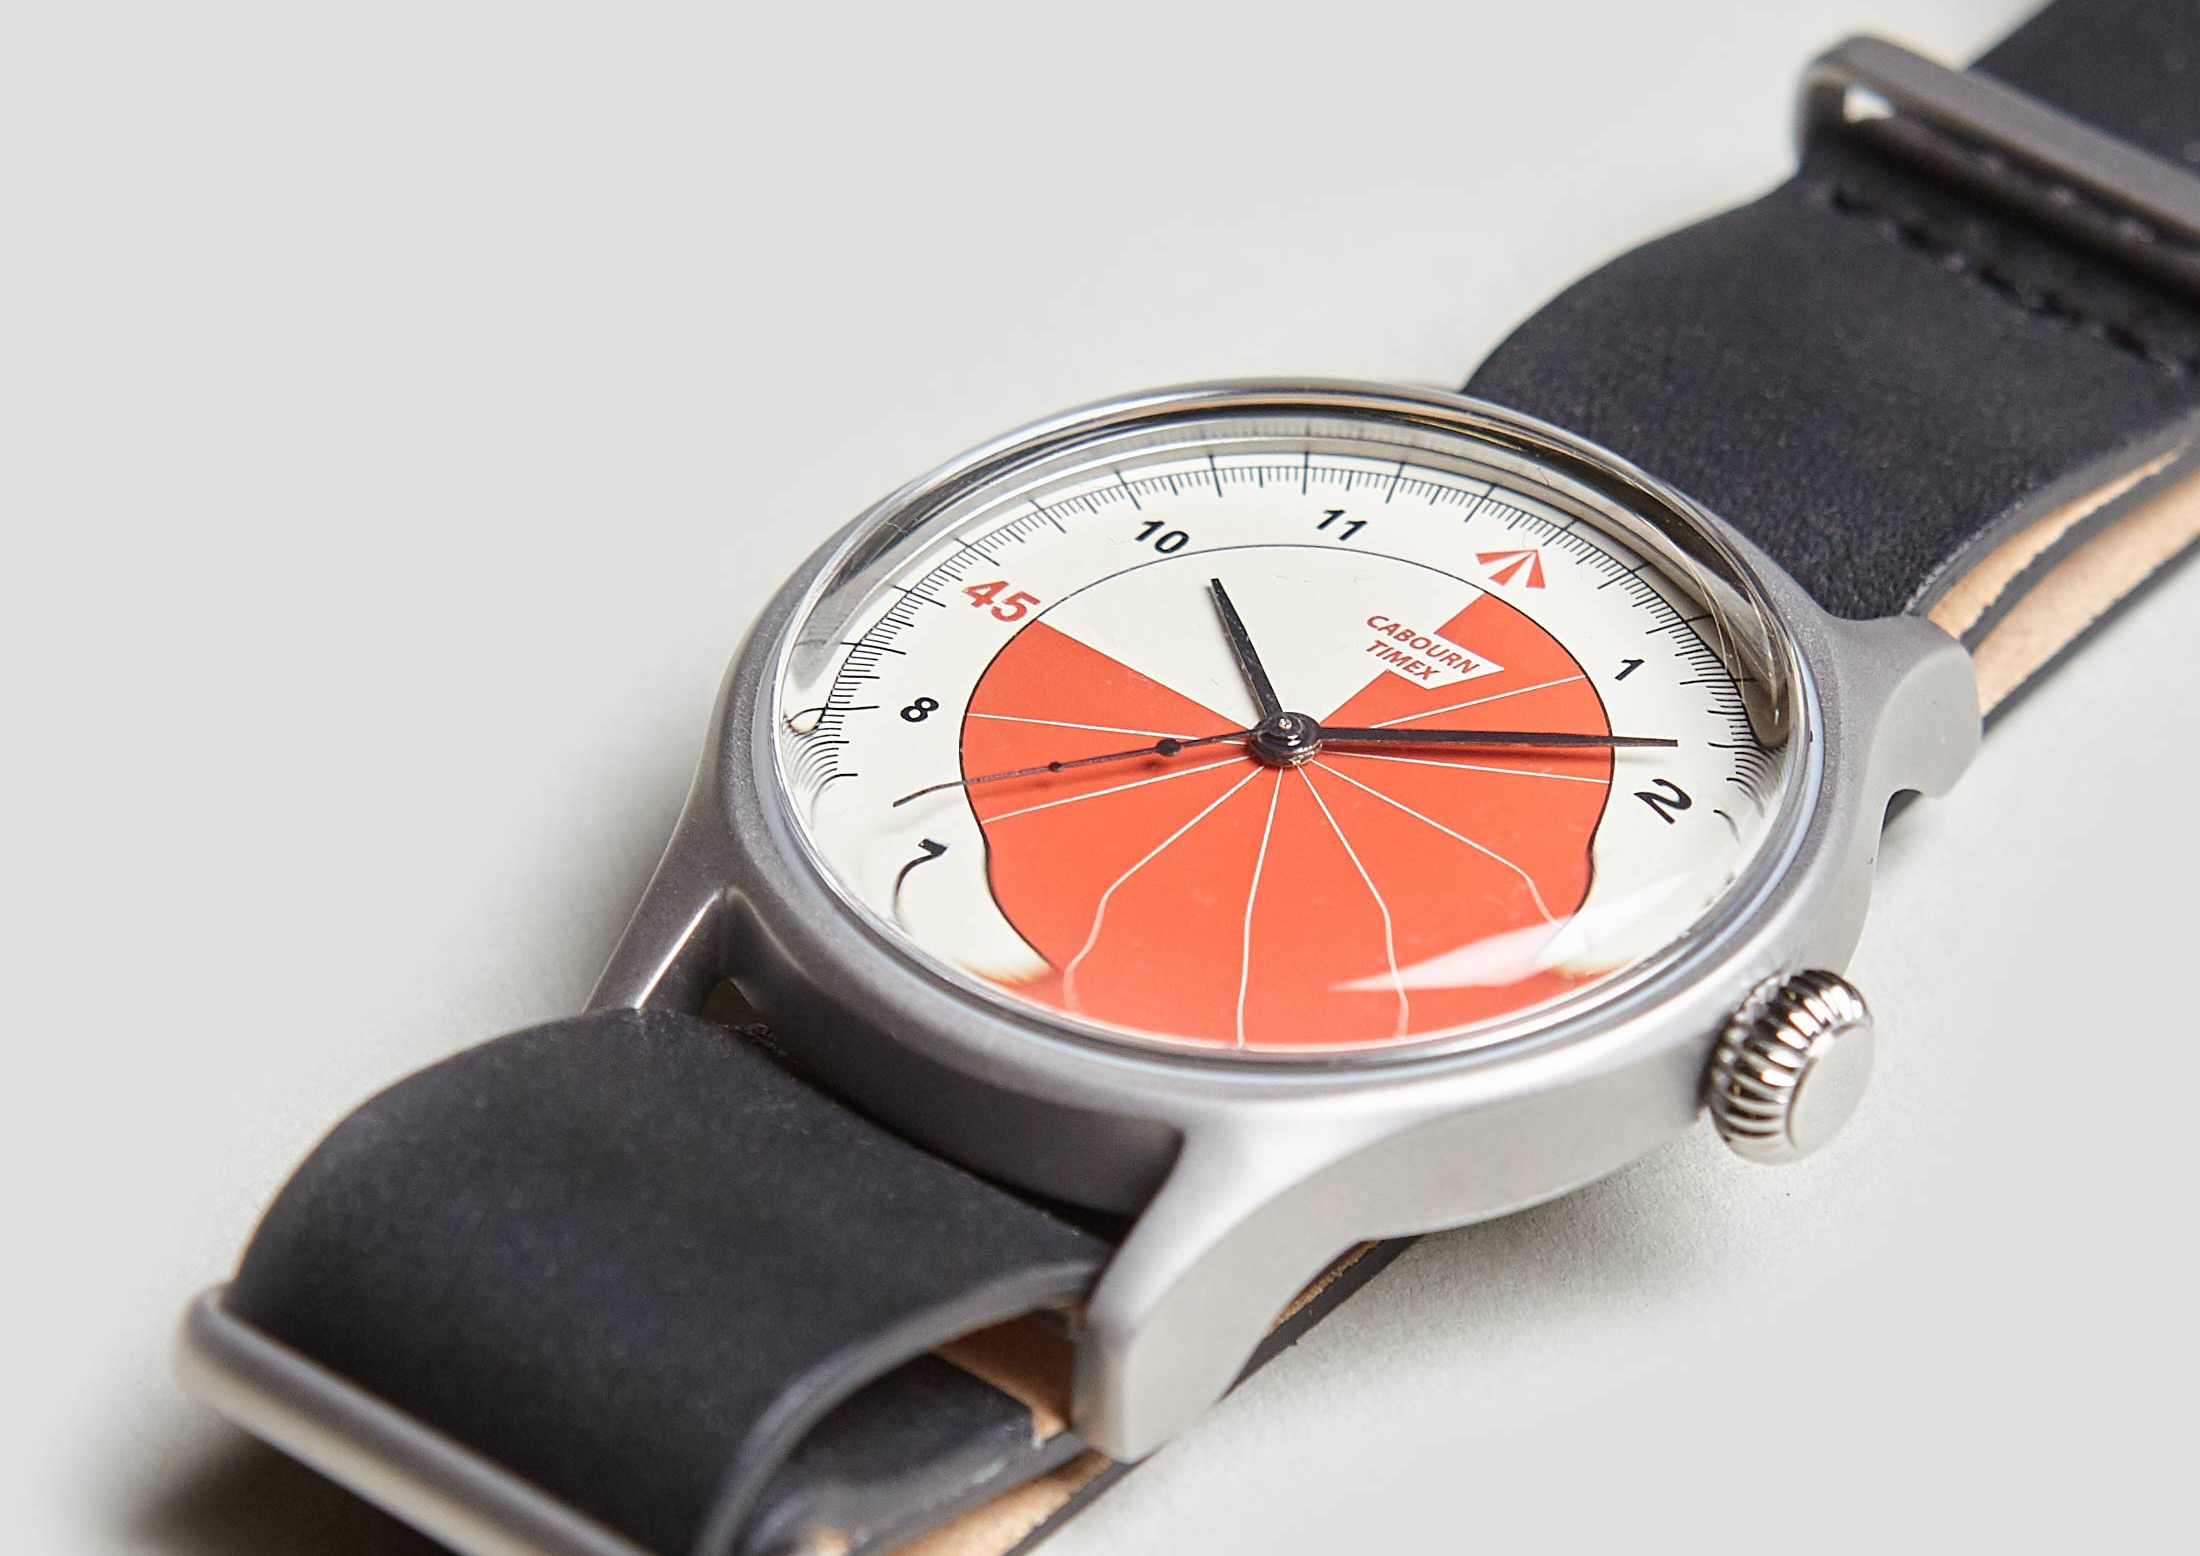 Timex x Nigel Cabourn collaboration 2019